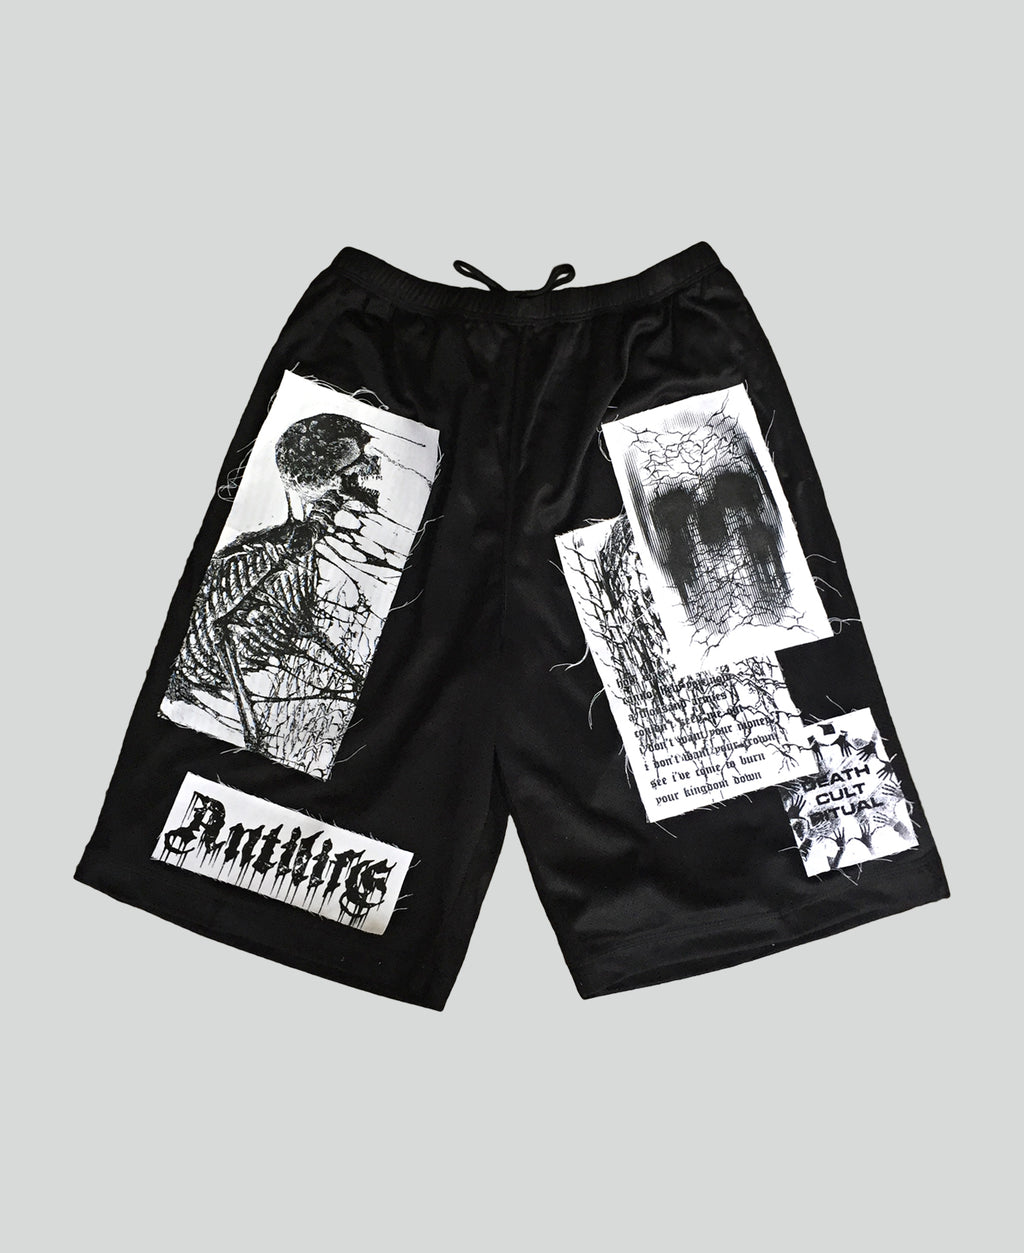 'Death Cult' Shorts - The Anti Life Ltd